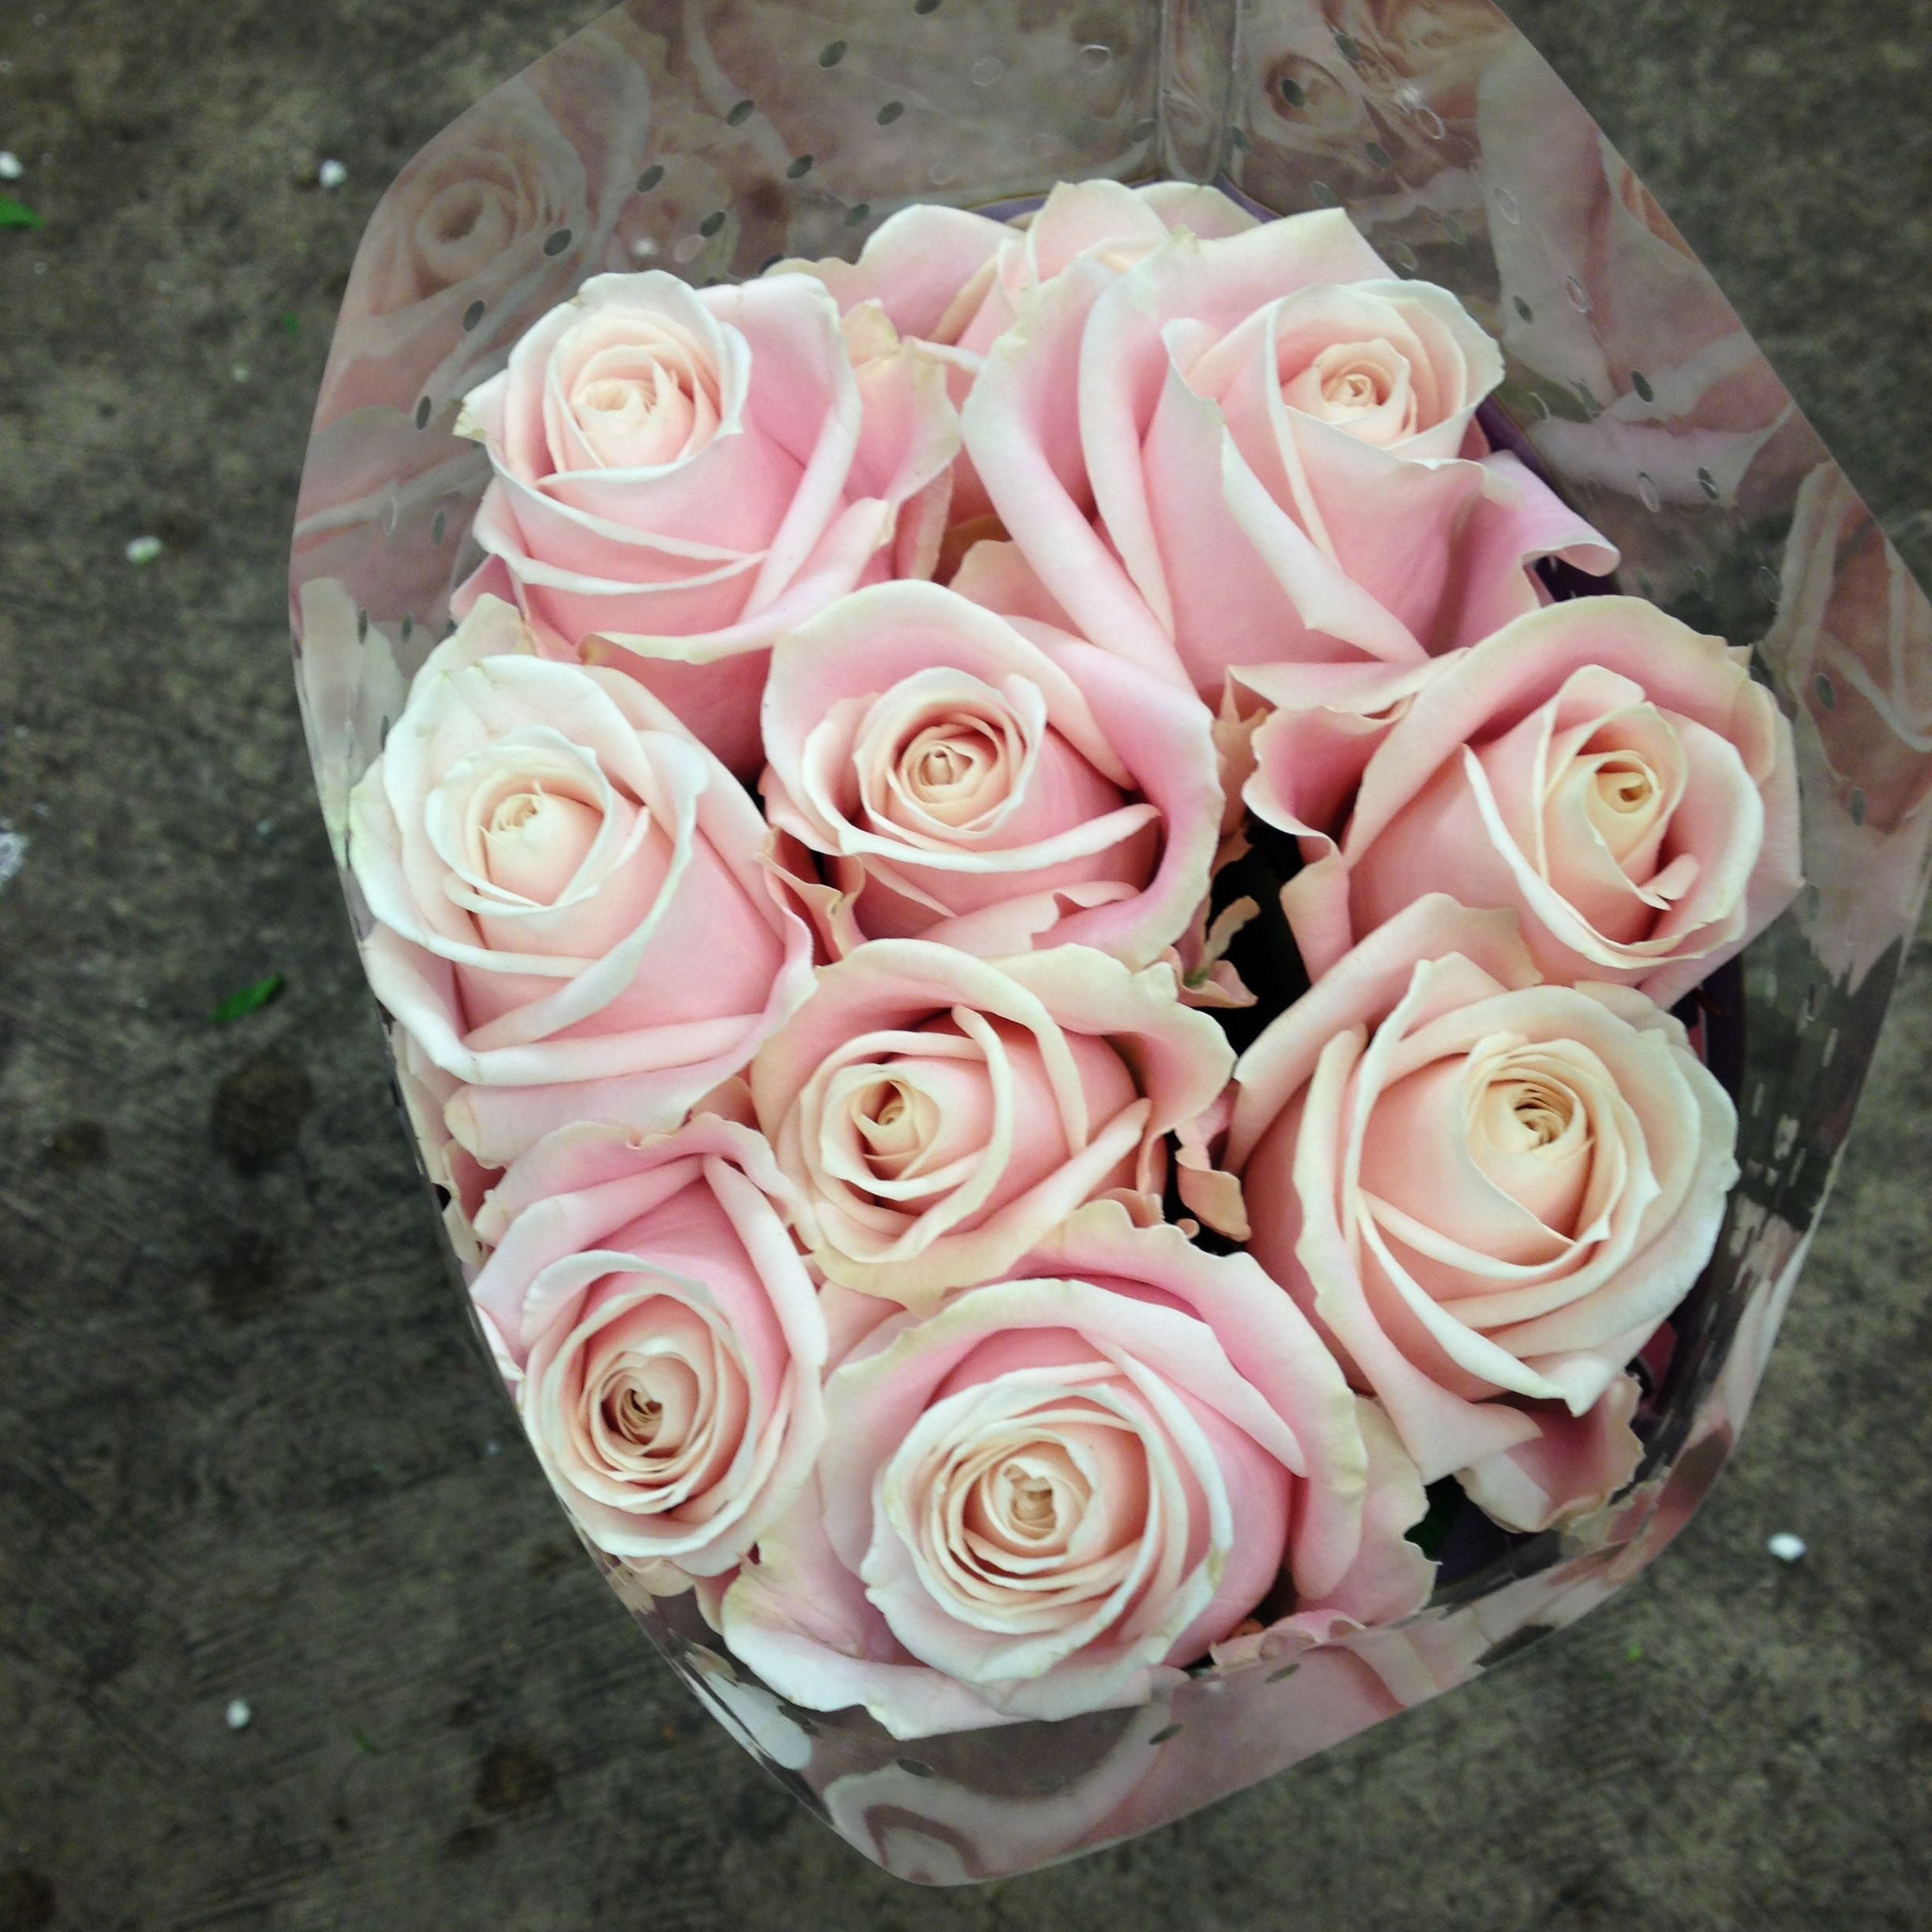 Home bulk roses peach roses - Pale Pink Rose Called Sweet Avalanche Sold In Bunches Of 20 Stems From The